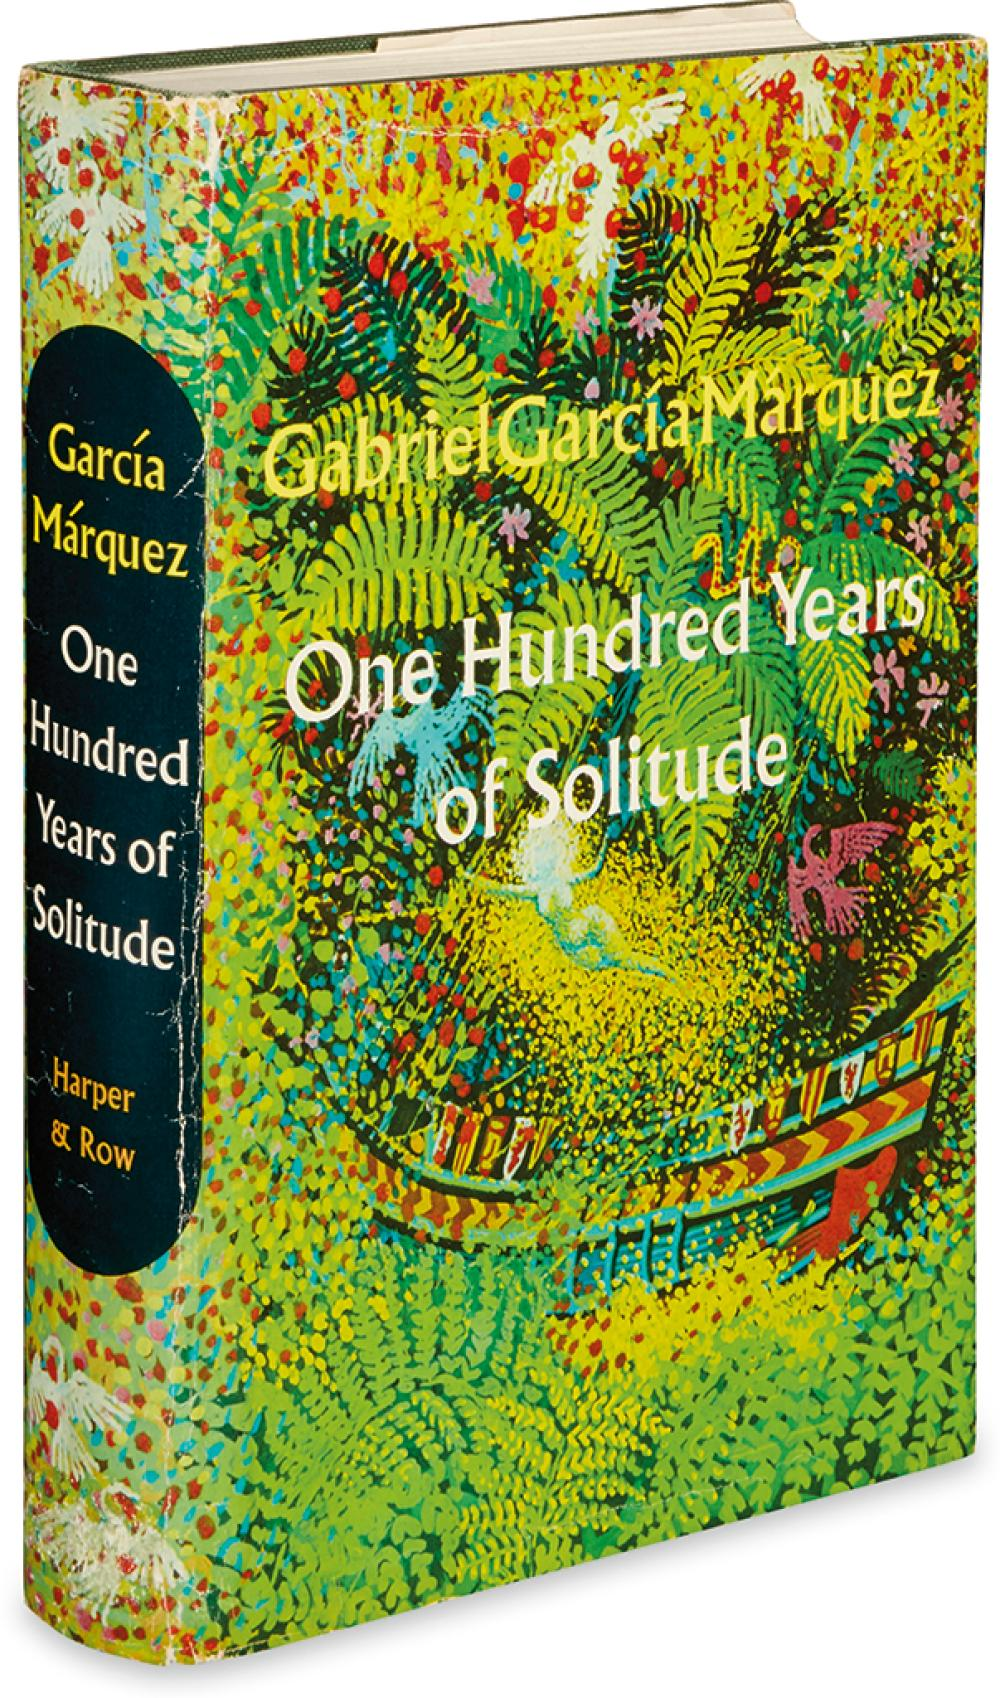 GARCÍA MÁRQUEZ, GABRIEL. One Hundred Years of Solitude.